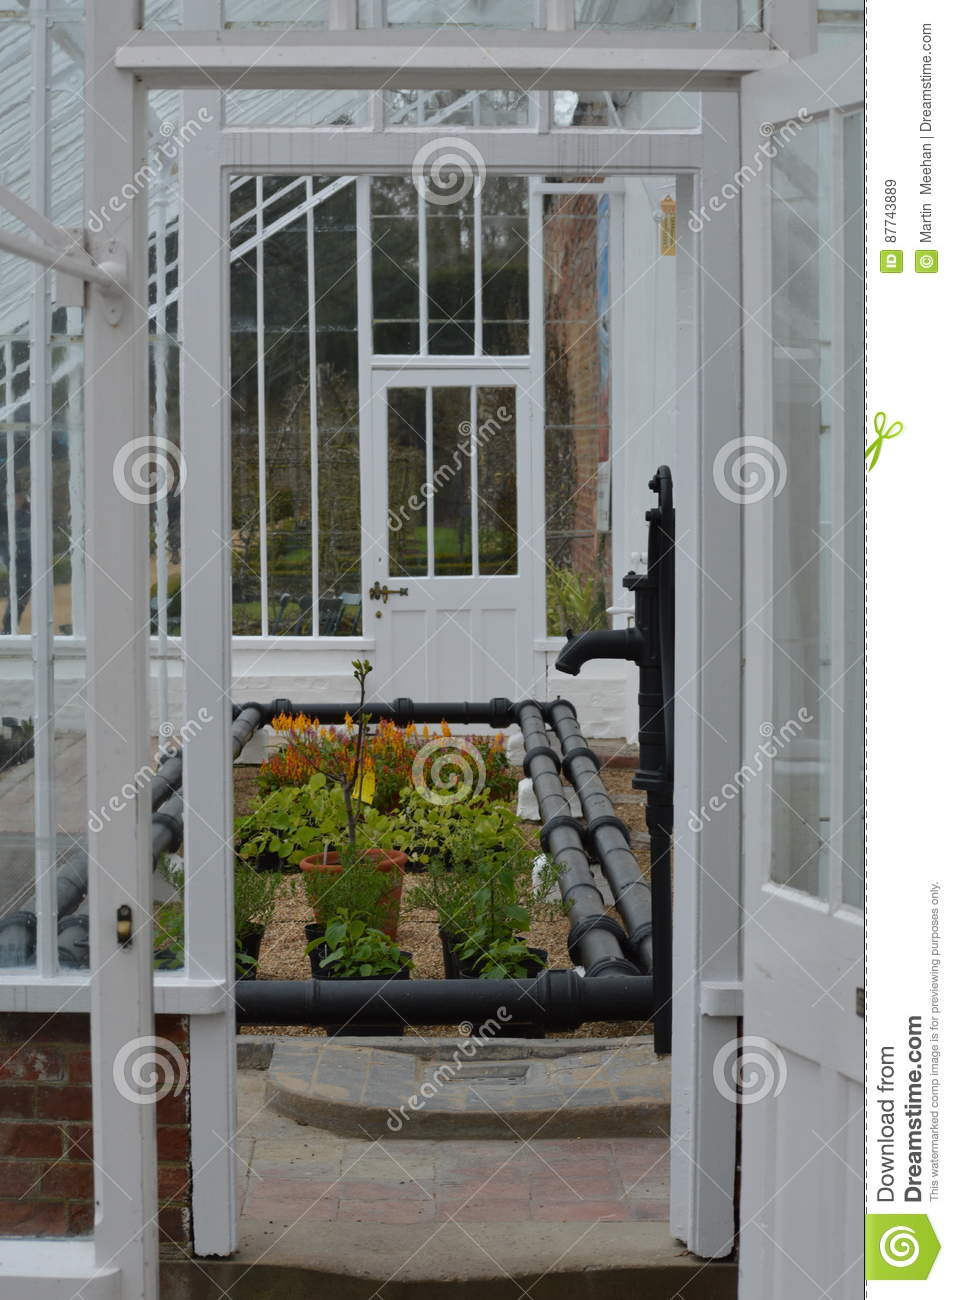 large garden glasshouse. stock photo - image: 87743889